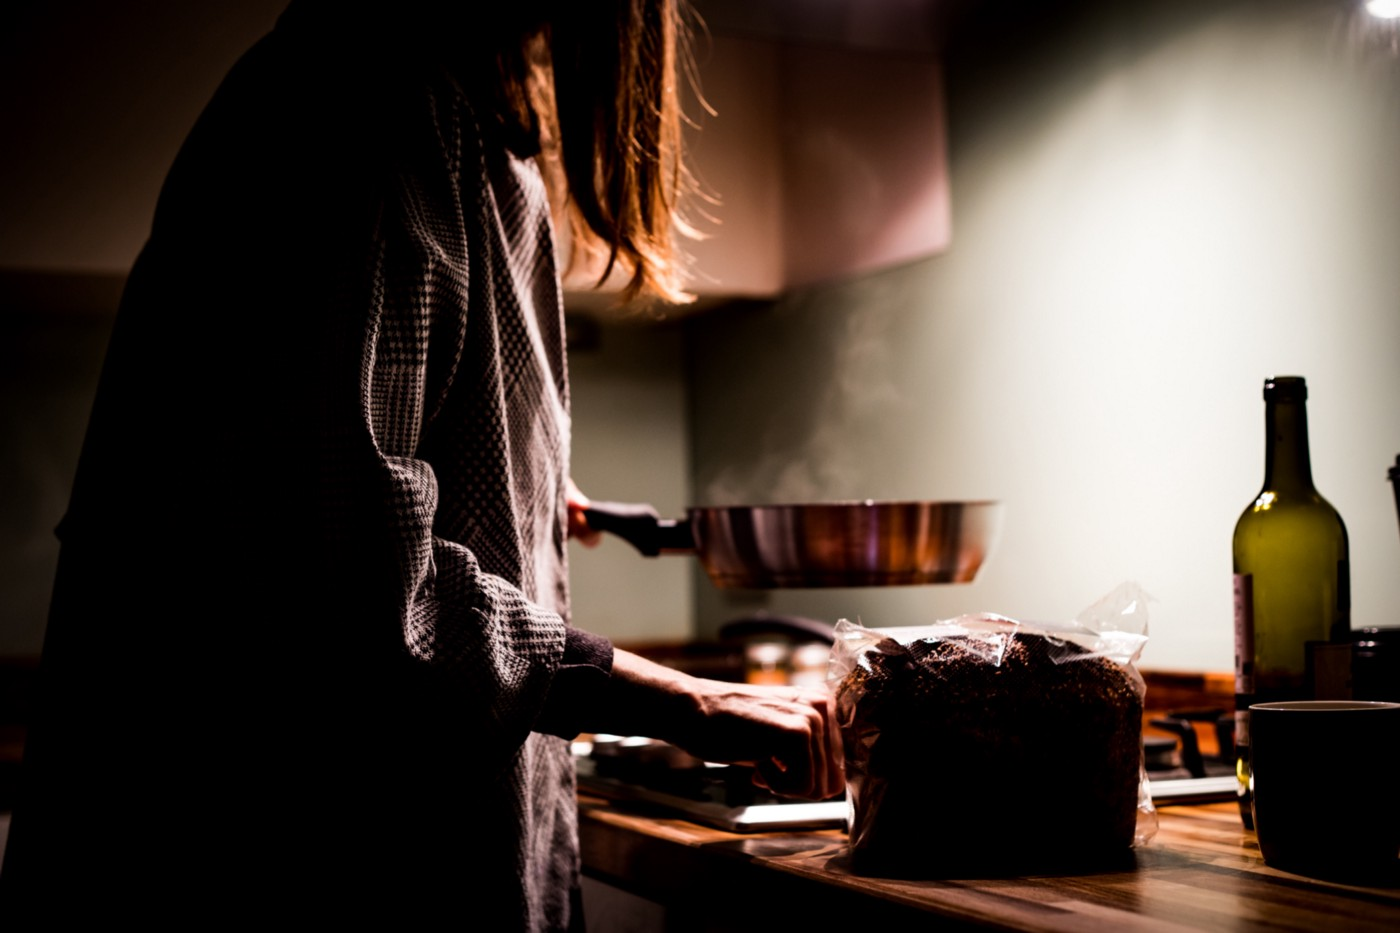 A dimly lit photo of a woman cooking on the stove top in her kitchen.